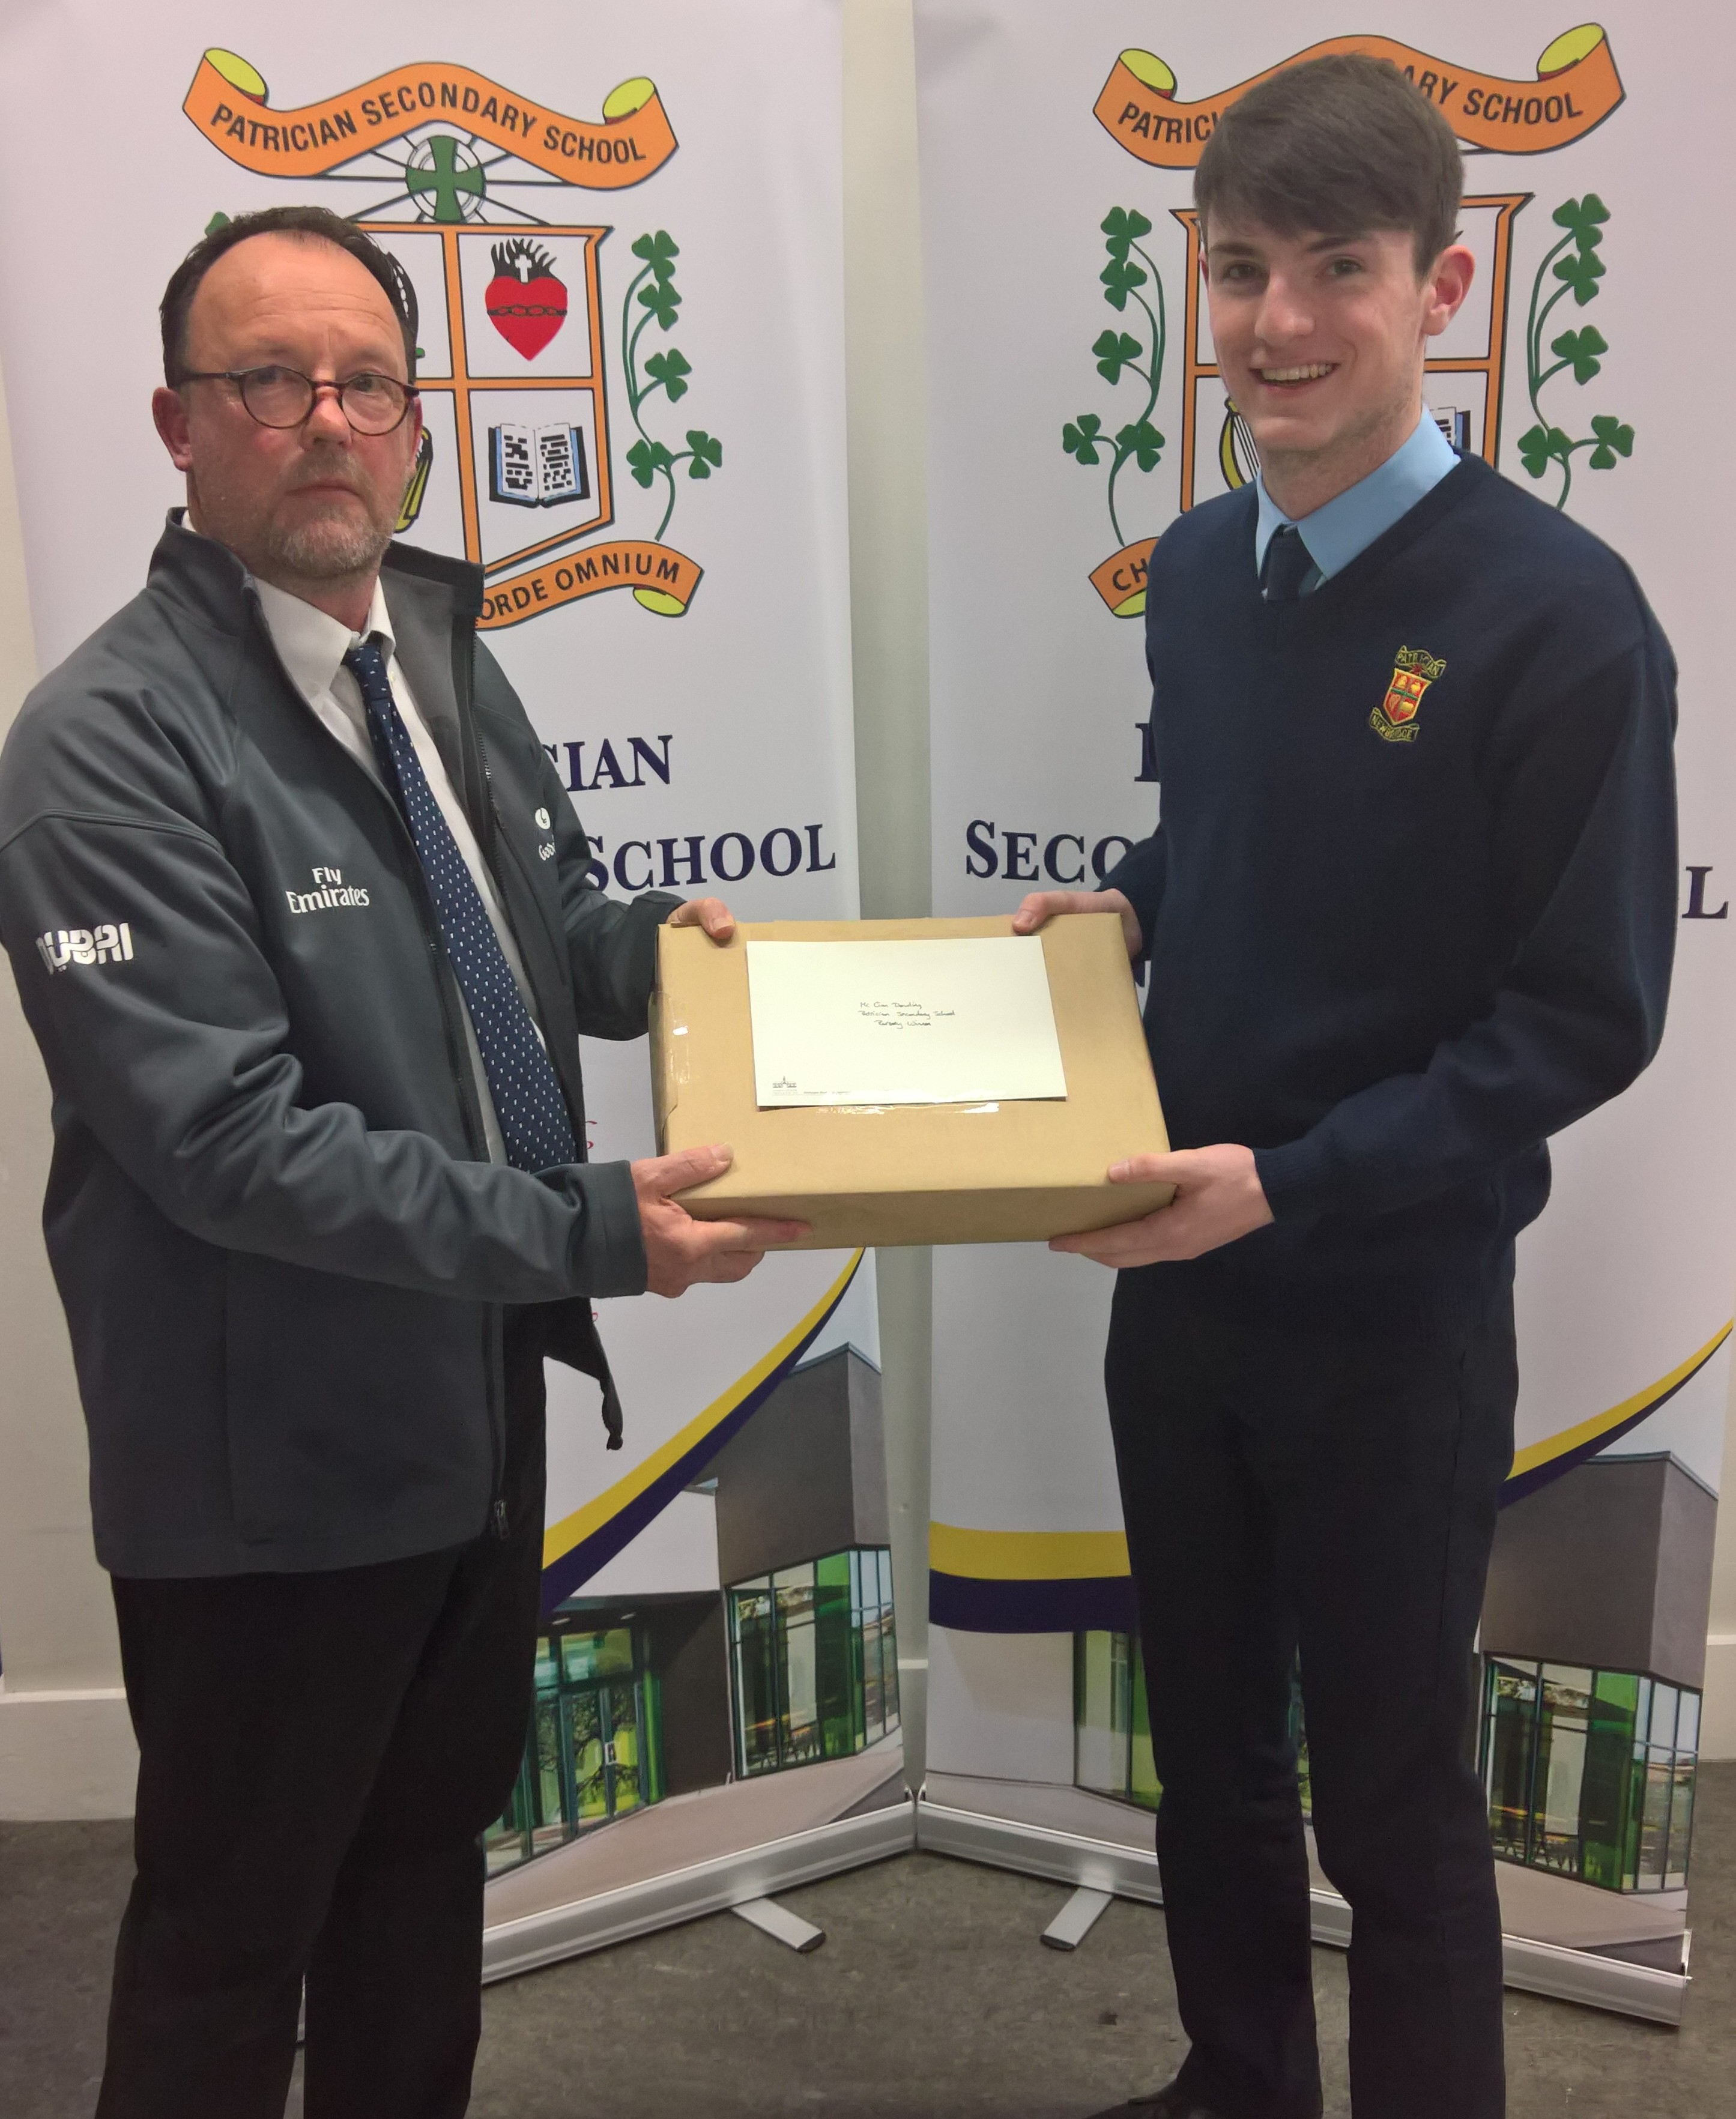 Old Connell Stud's David Brophy presents Cian Dowling with his prize of a new laptop sponsored by Darley